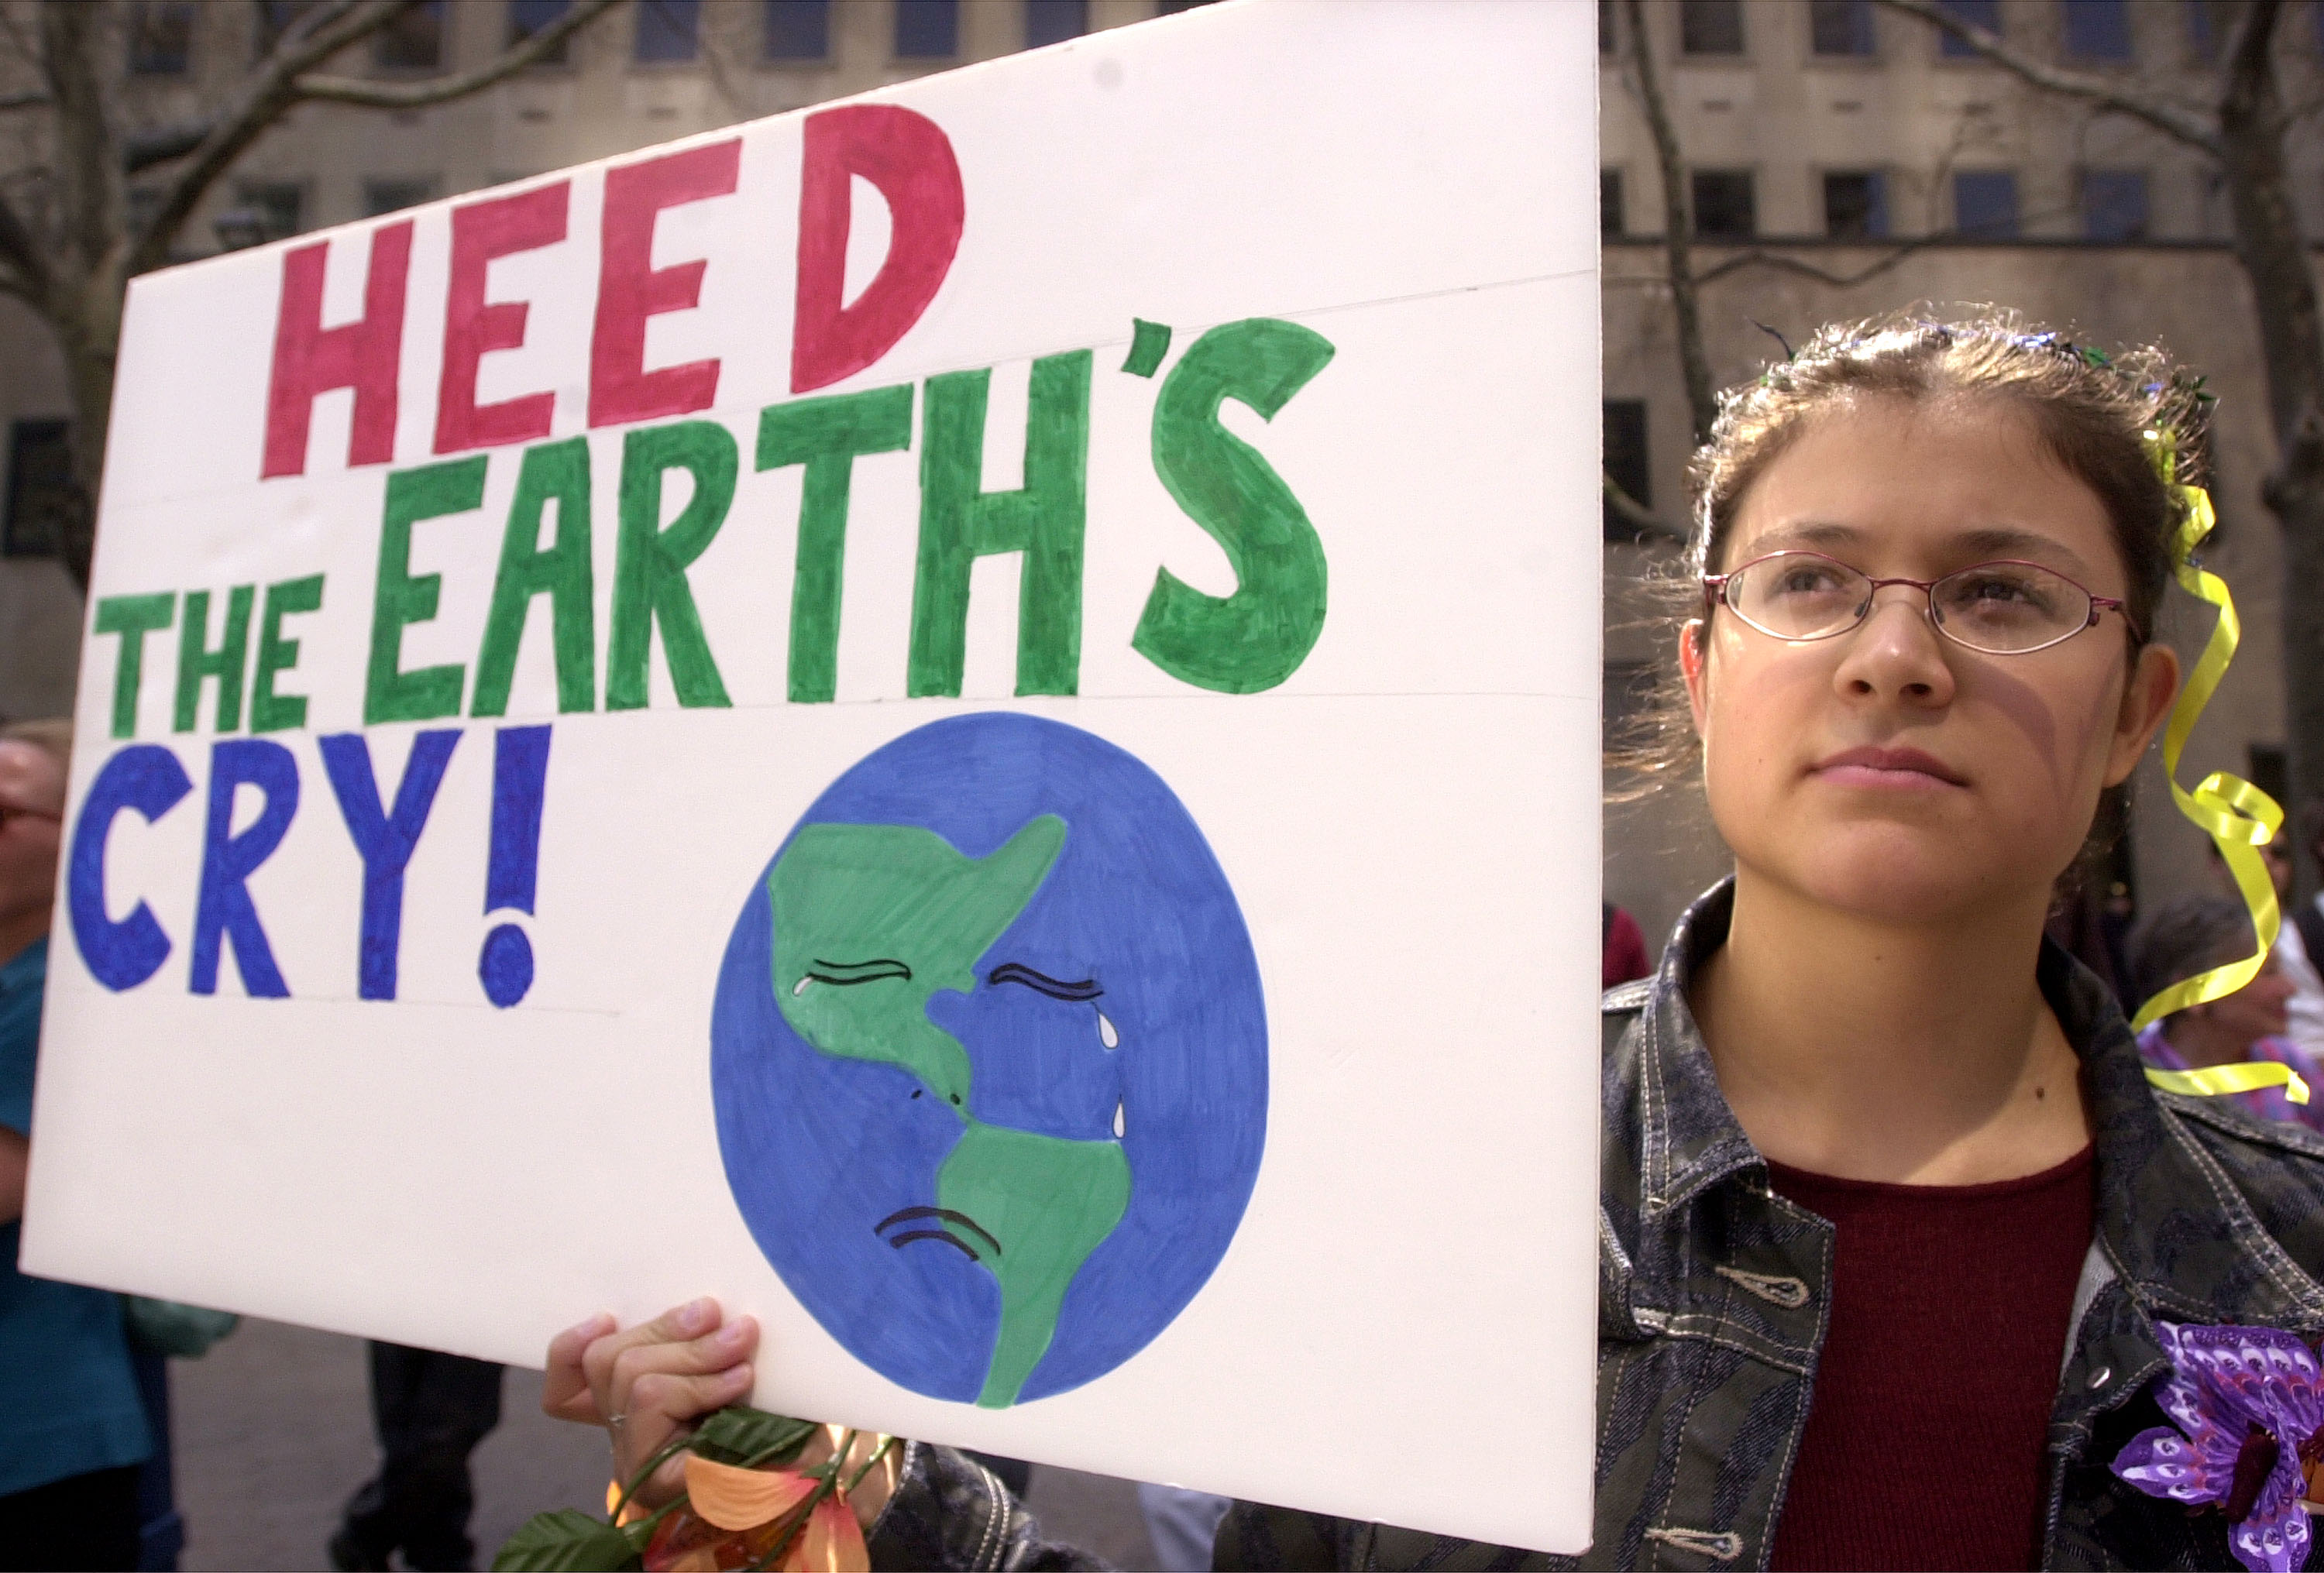 A protester holds a sign at an Earth Day rally April 22, 2001 in front of the United Nations in New York City. (Photo by Spencer Platt/Newsmakers)